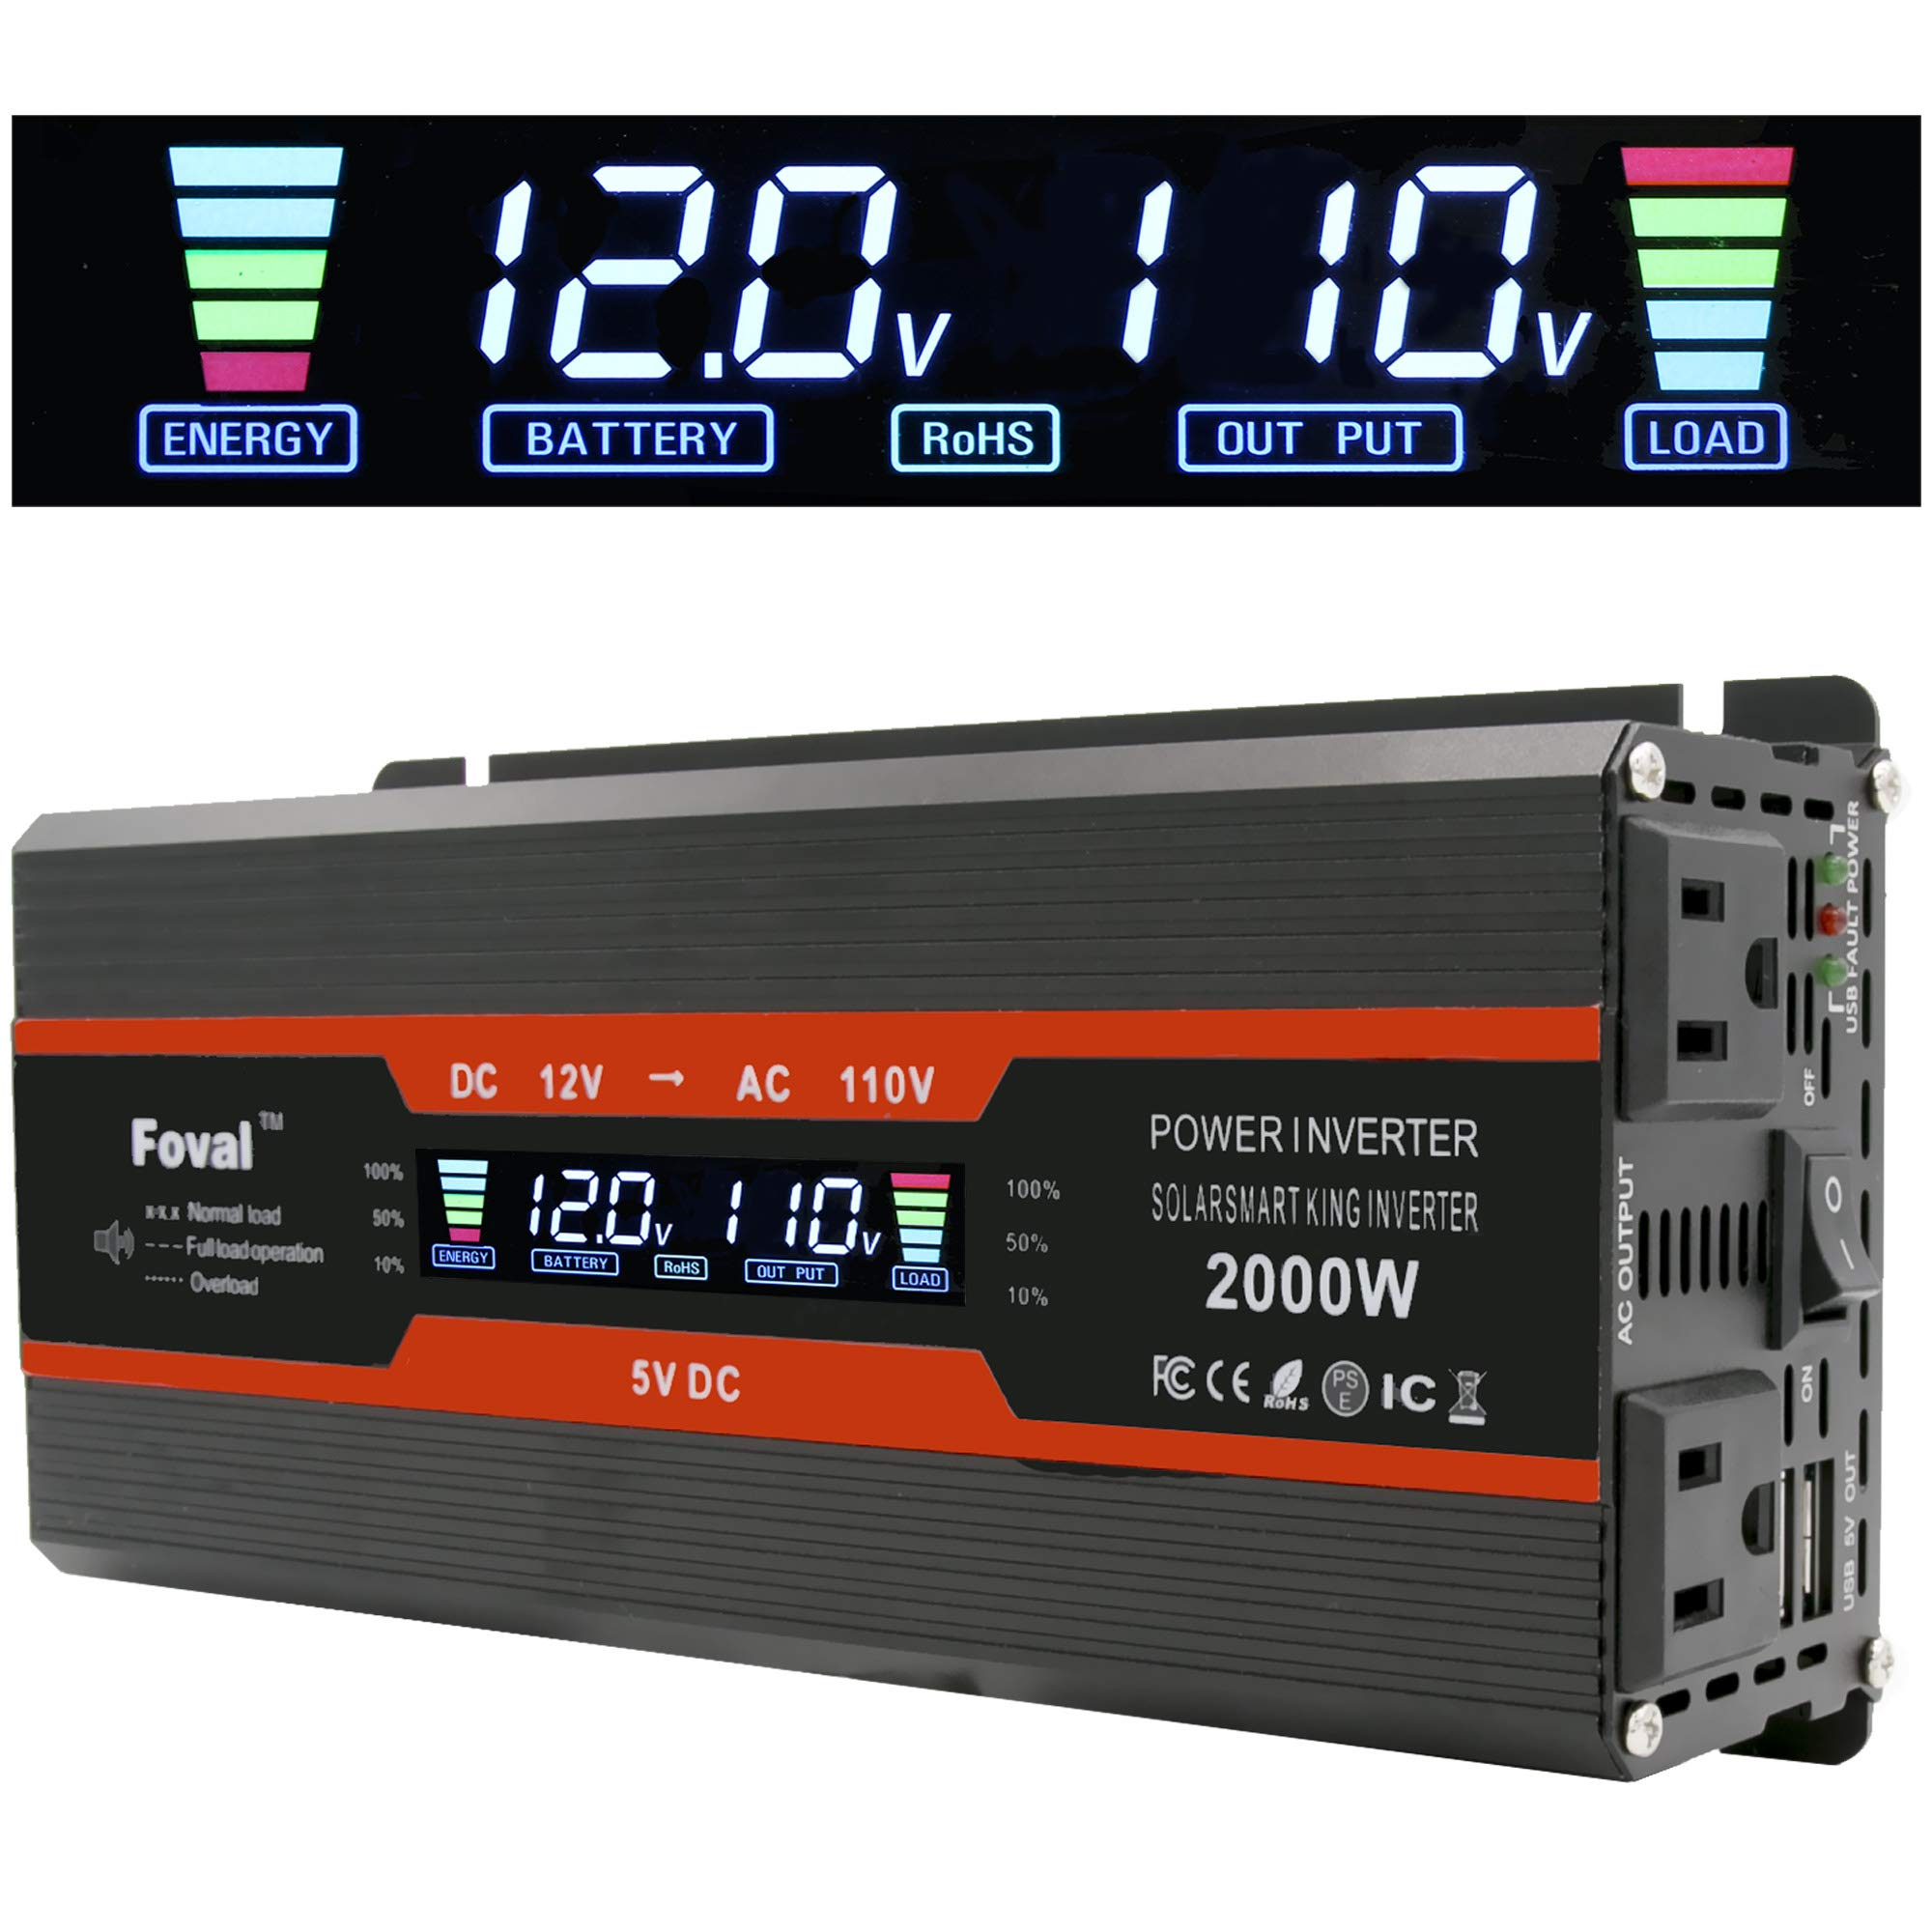 Cantonape 800W/2000W(Peak) Car Power Inverter DC 12V To 110V AC Converter With LCD Display Dual AC Outlets